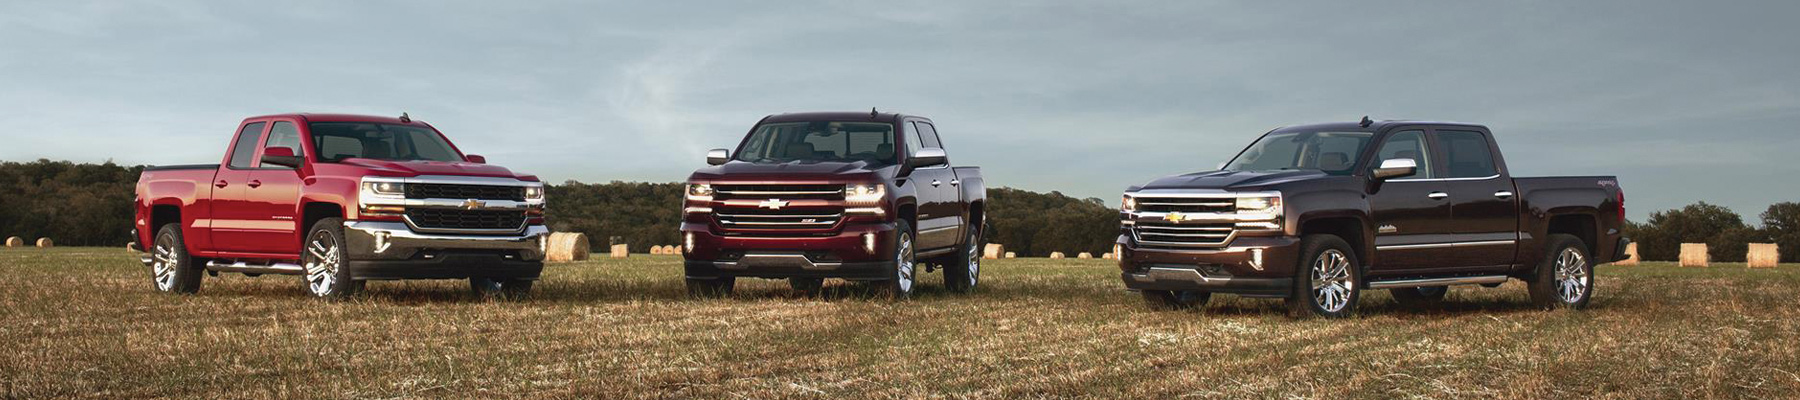 Used Chevrolet Silverado trucks in Campbell River